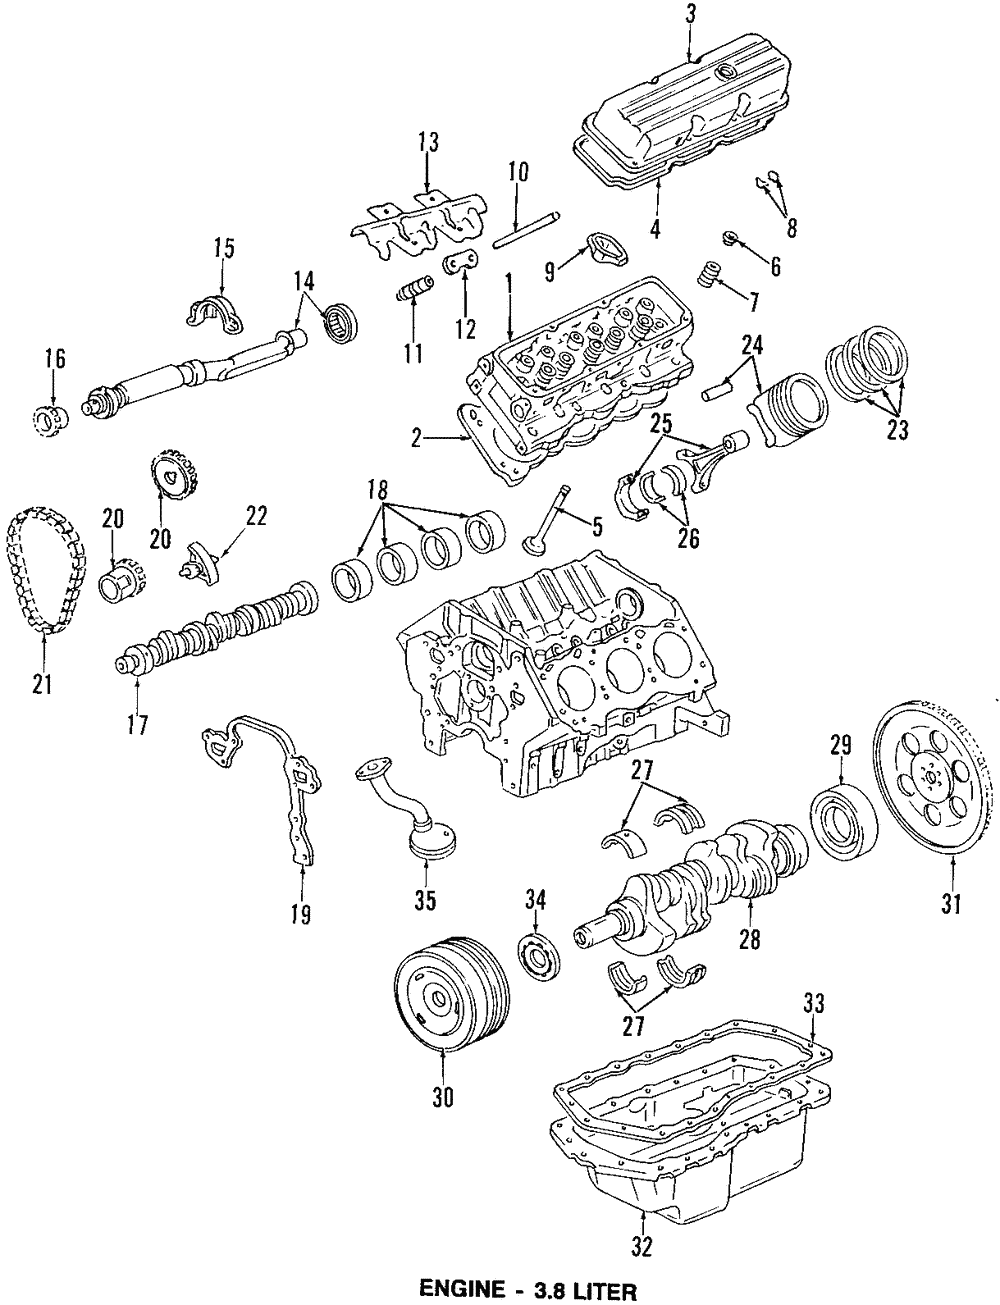 hight resolution of oem 3 8l engine valve lifter guide buick chevrolet oldsmobile pontiac 24503256 main image part can be found as 12 in the diagram above